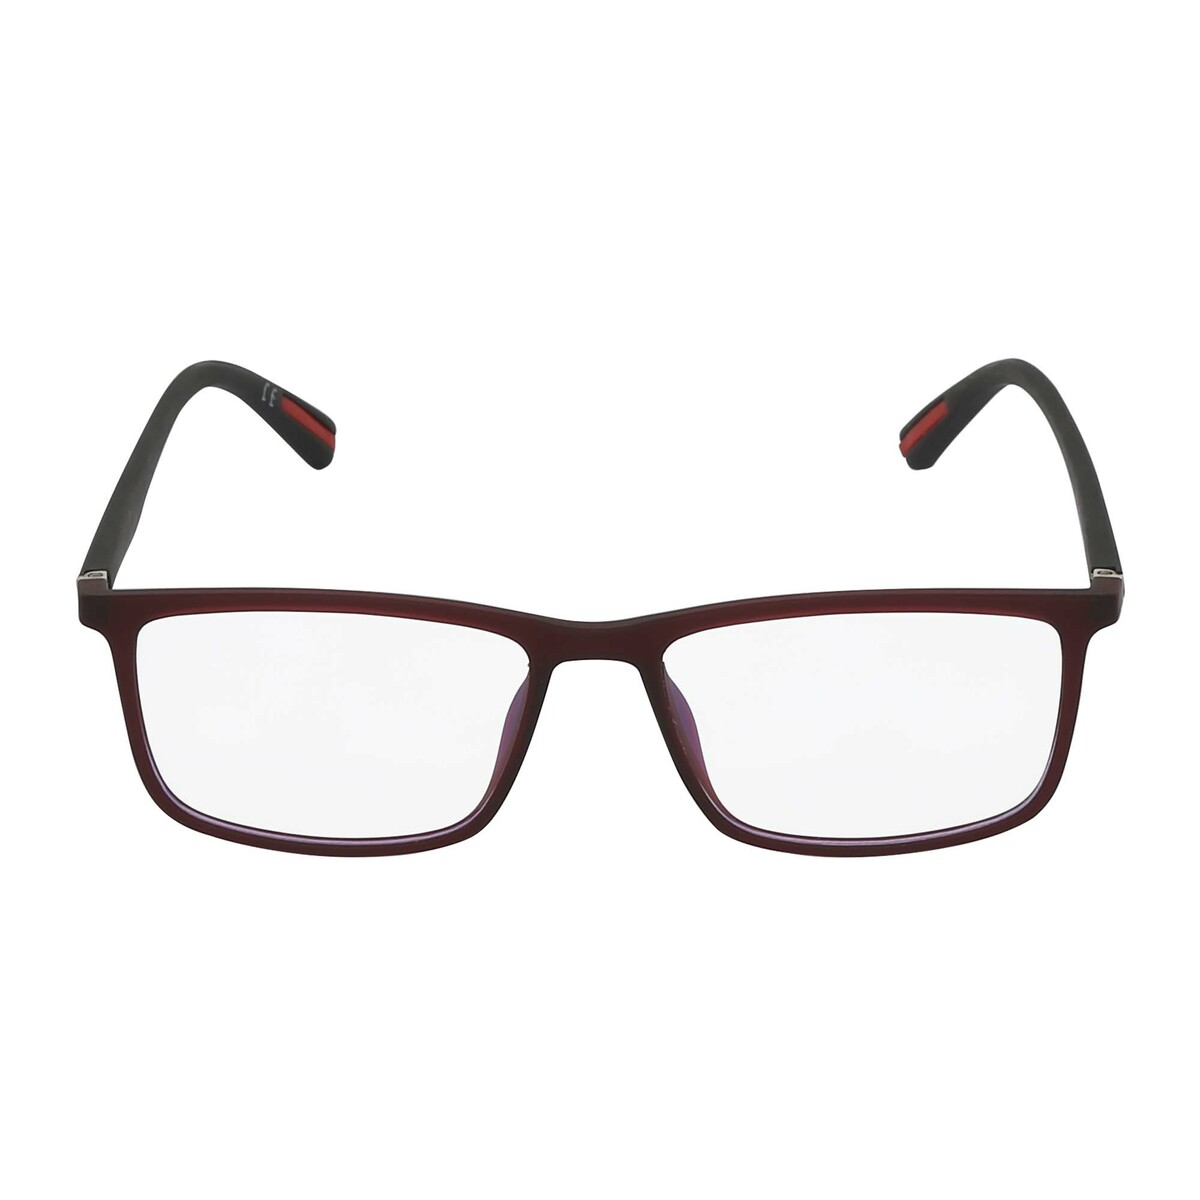 Stanlio Men's e-Glass 5602 C6 Square Brown